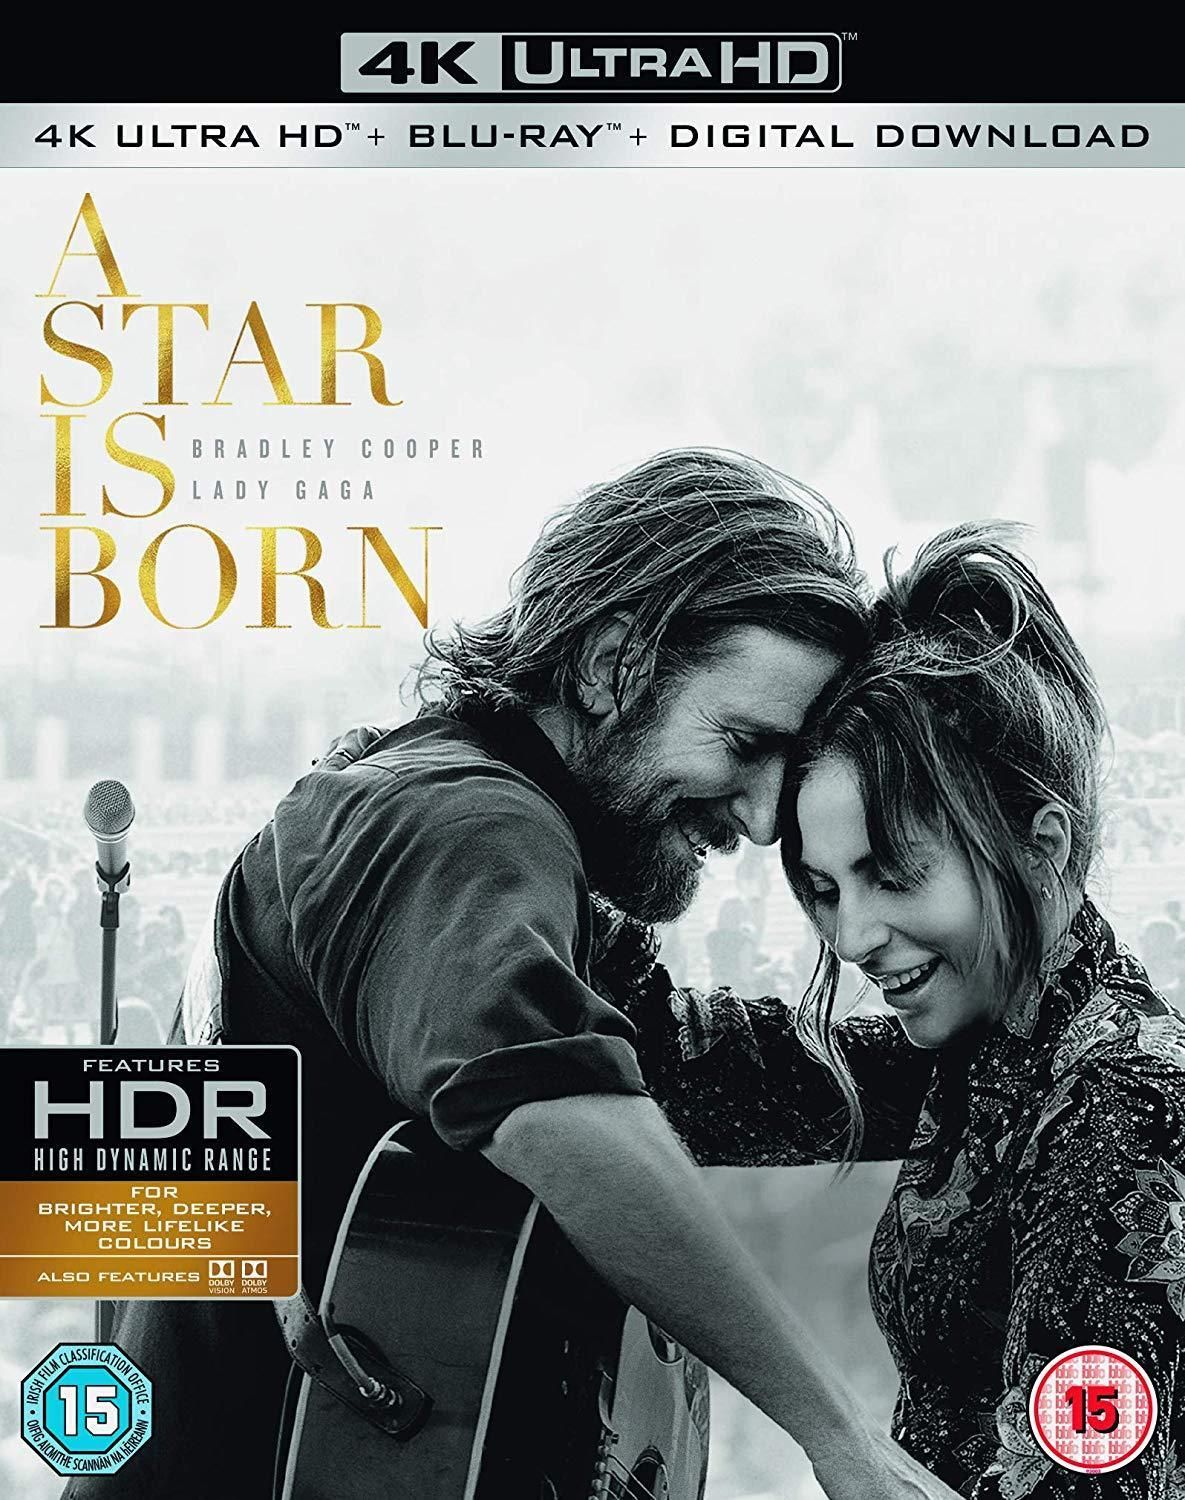 A Star Is Born 2018 4k Ultra Hd Bradley Cooper Lady Gaga